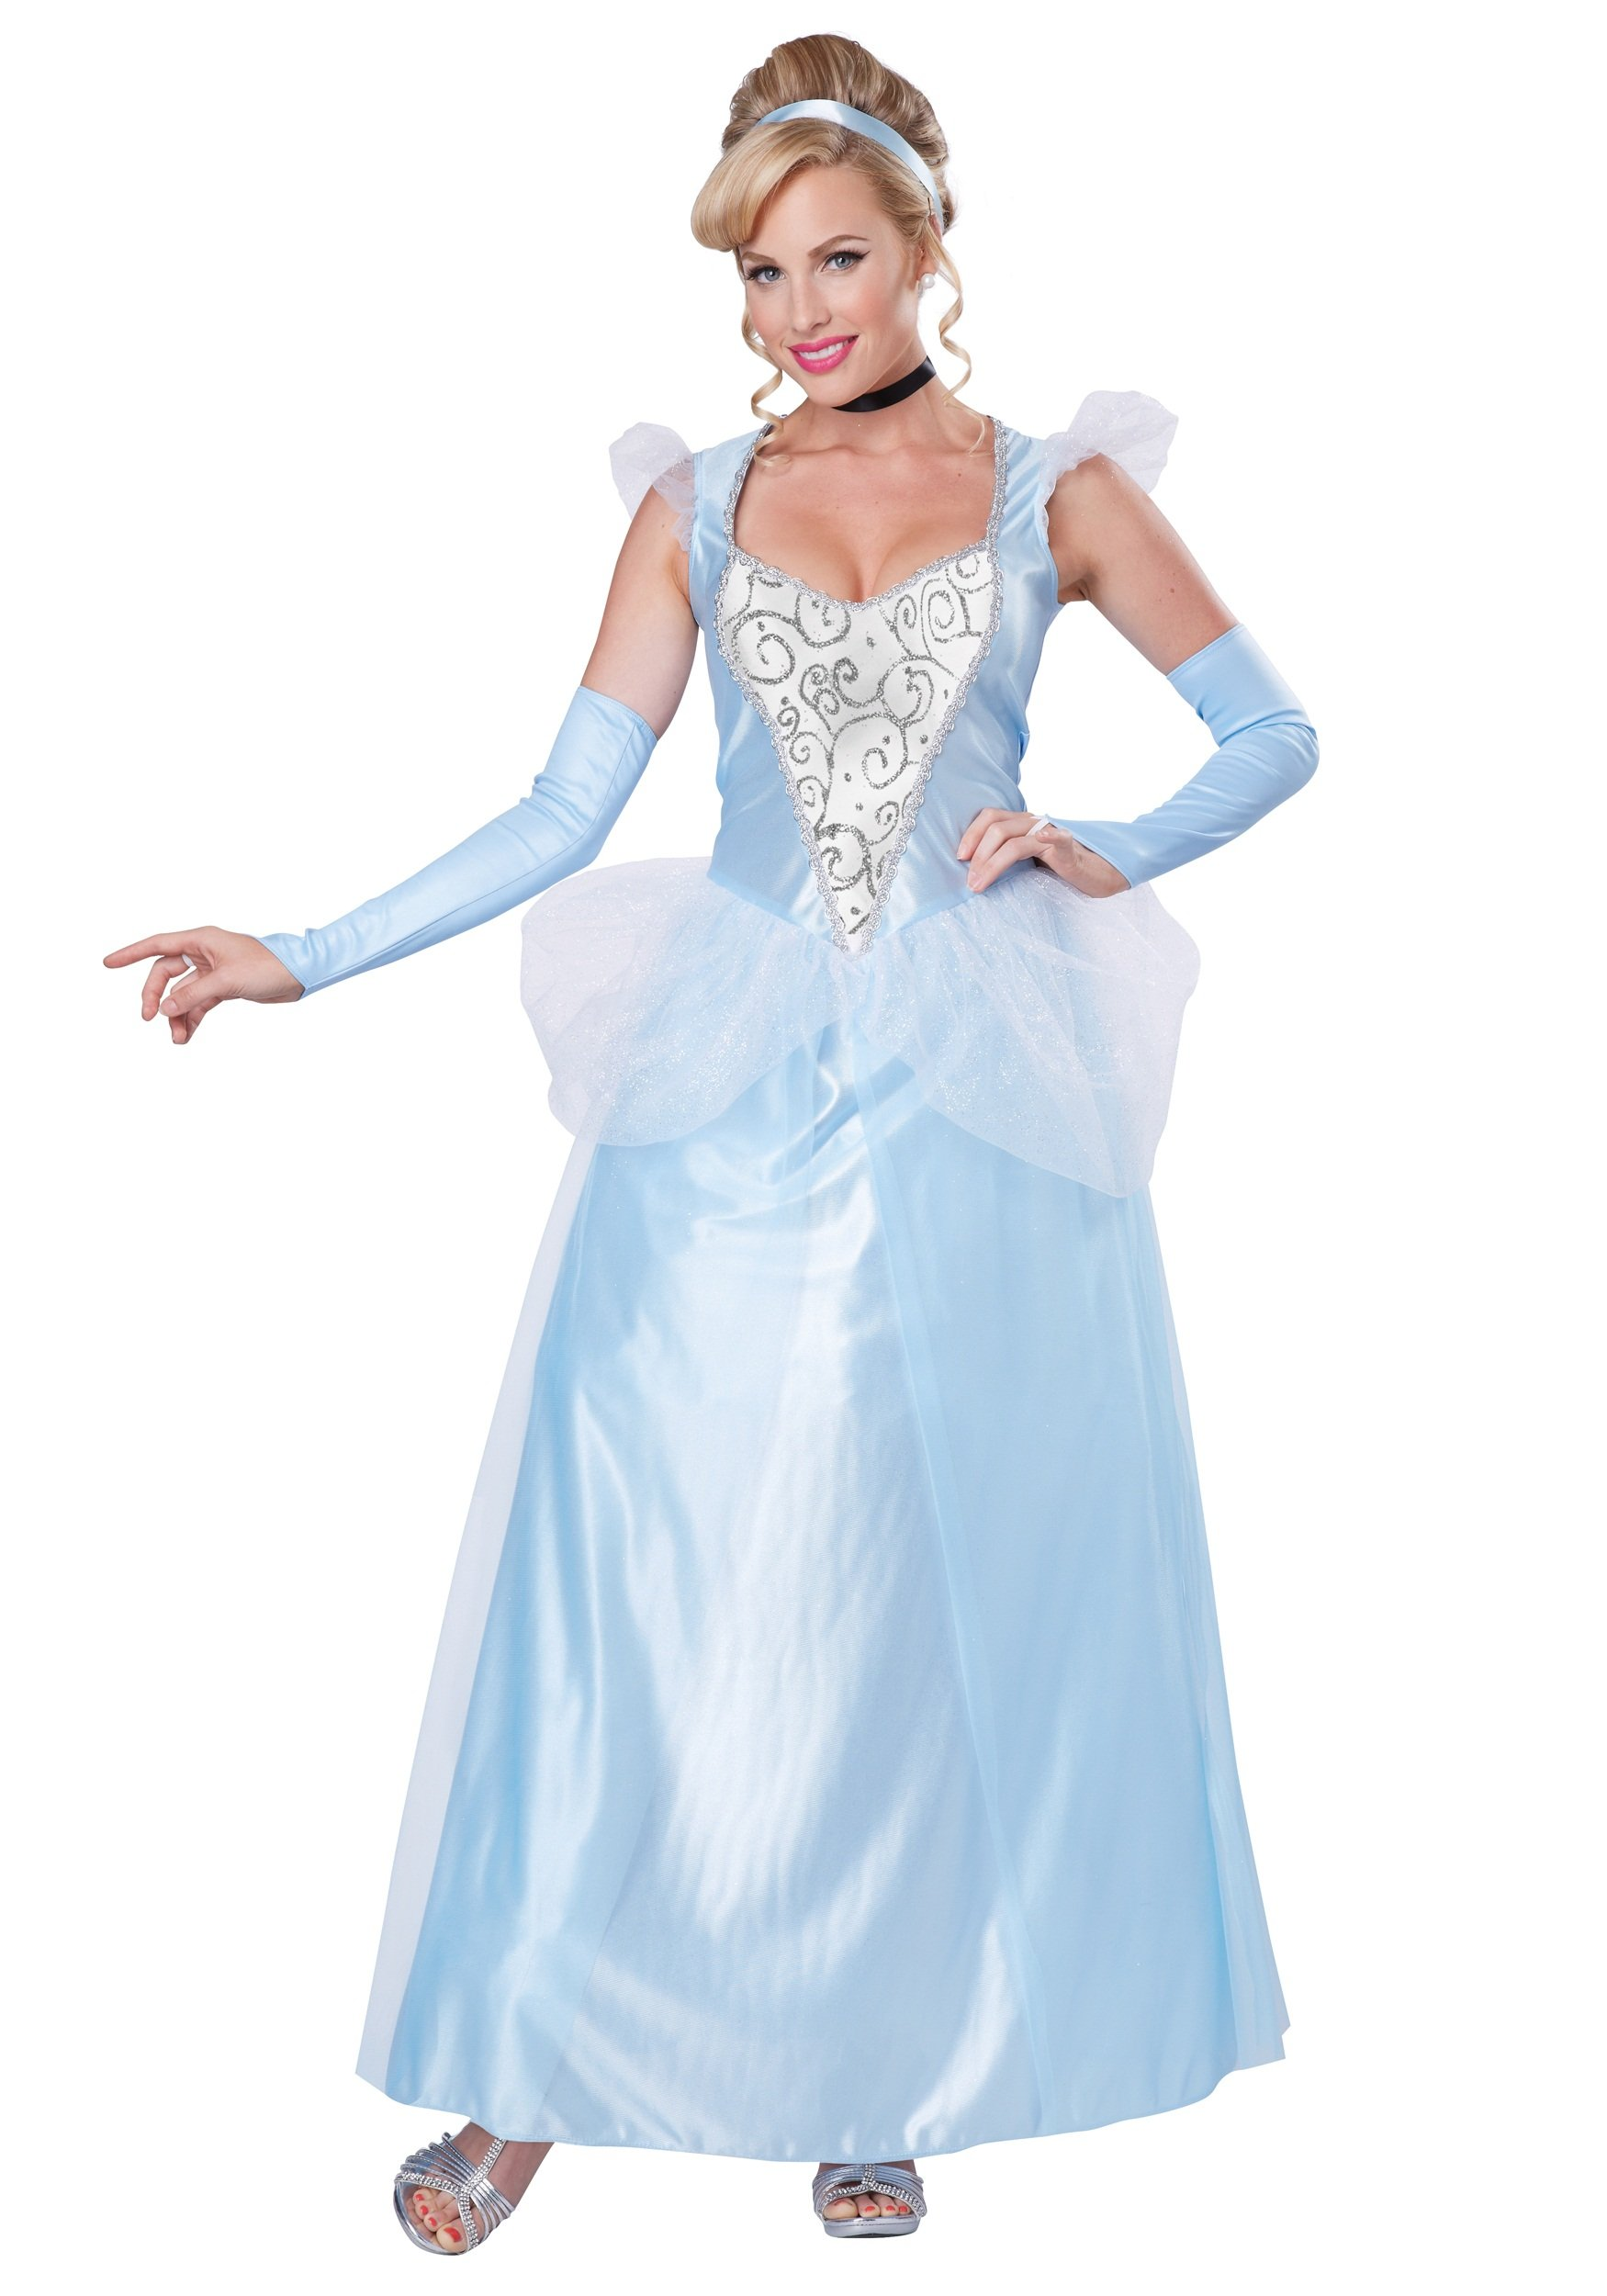 California Costumes Women's Classic Cinderella Fairytale Princess Long Dress Gown, Blue/White, Small